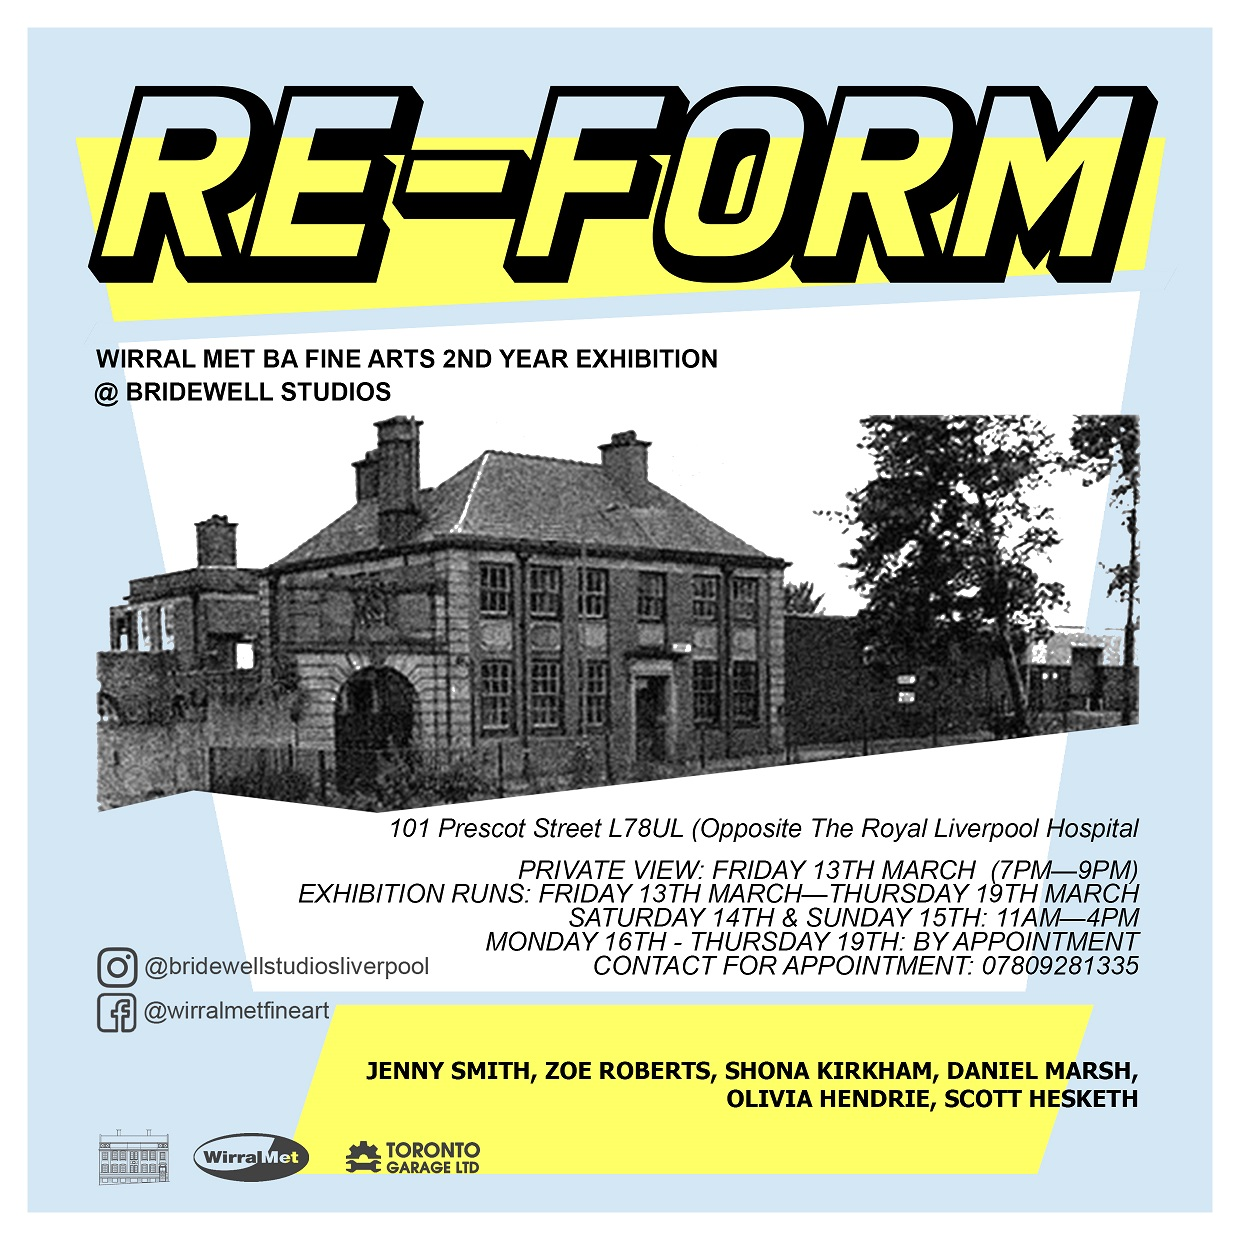 Bridewell Studios: RE-FORM, Wirral Met BA Fine Arts 2nd Year Exhibition